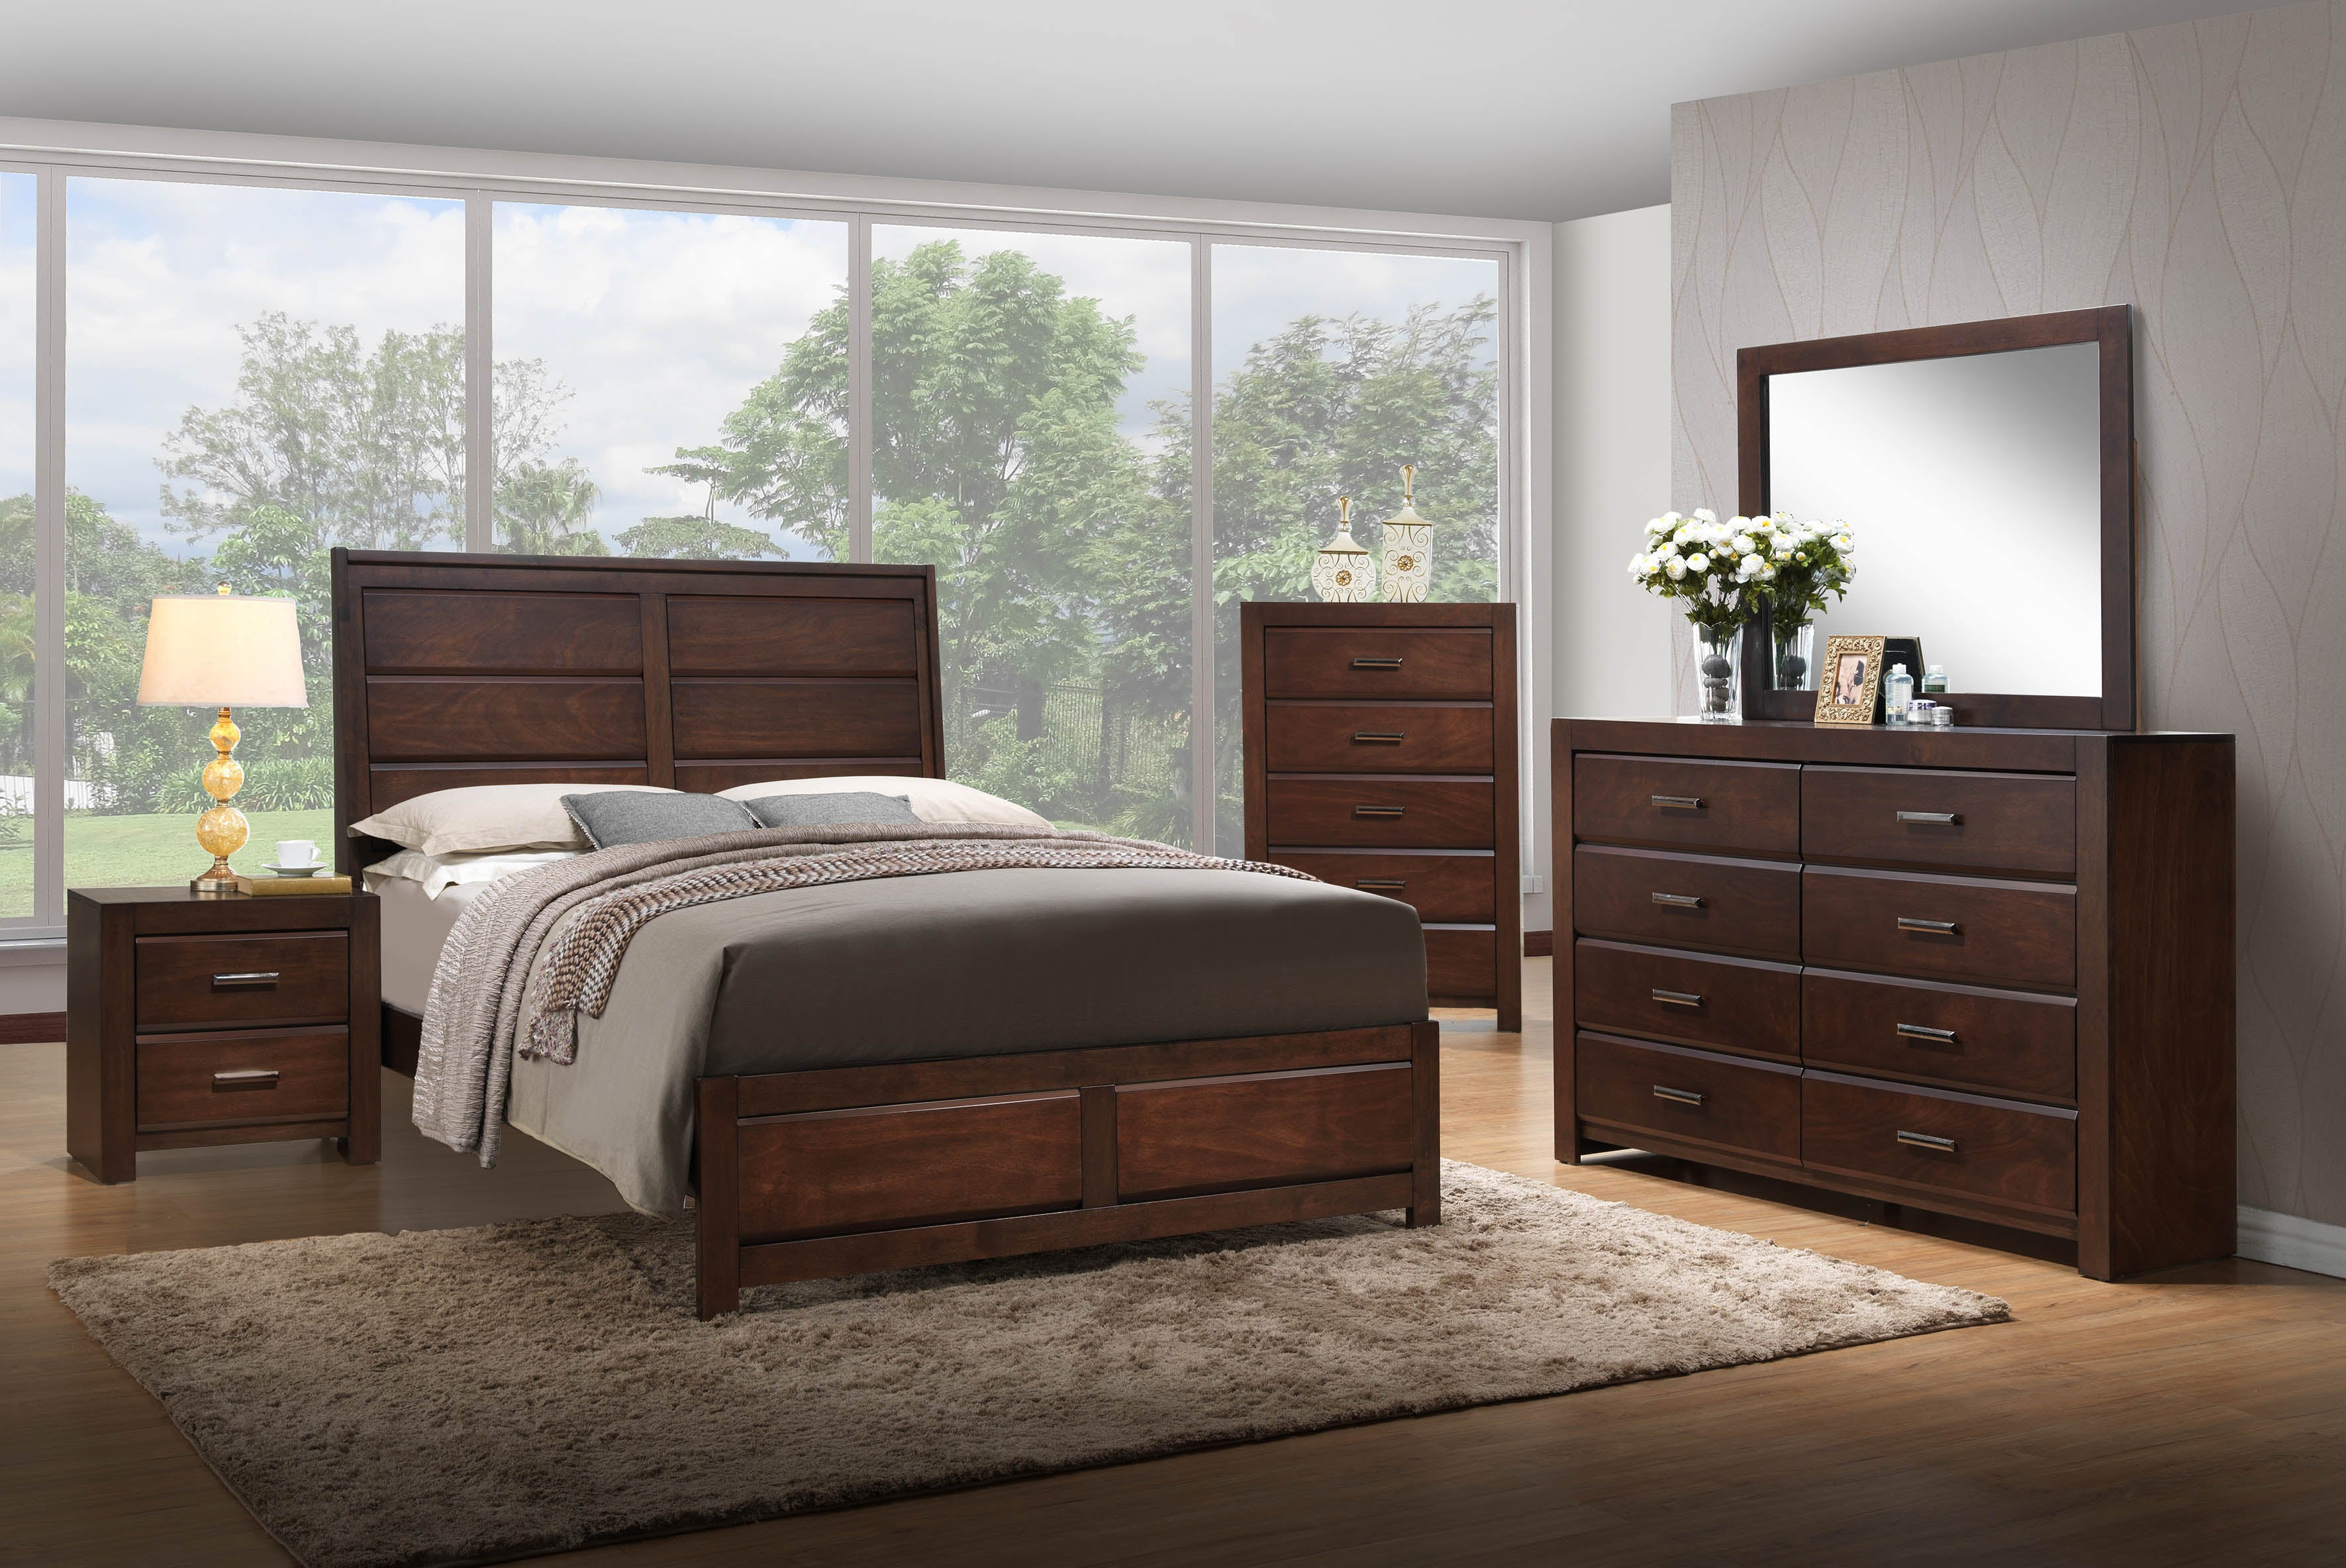 Millie Contemporary Bedroom Collection